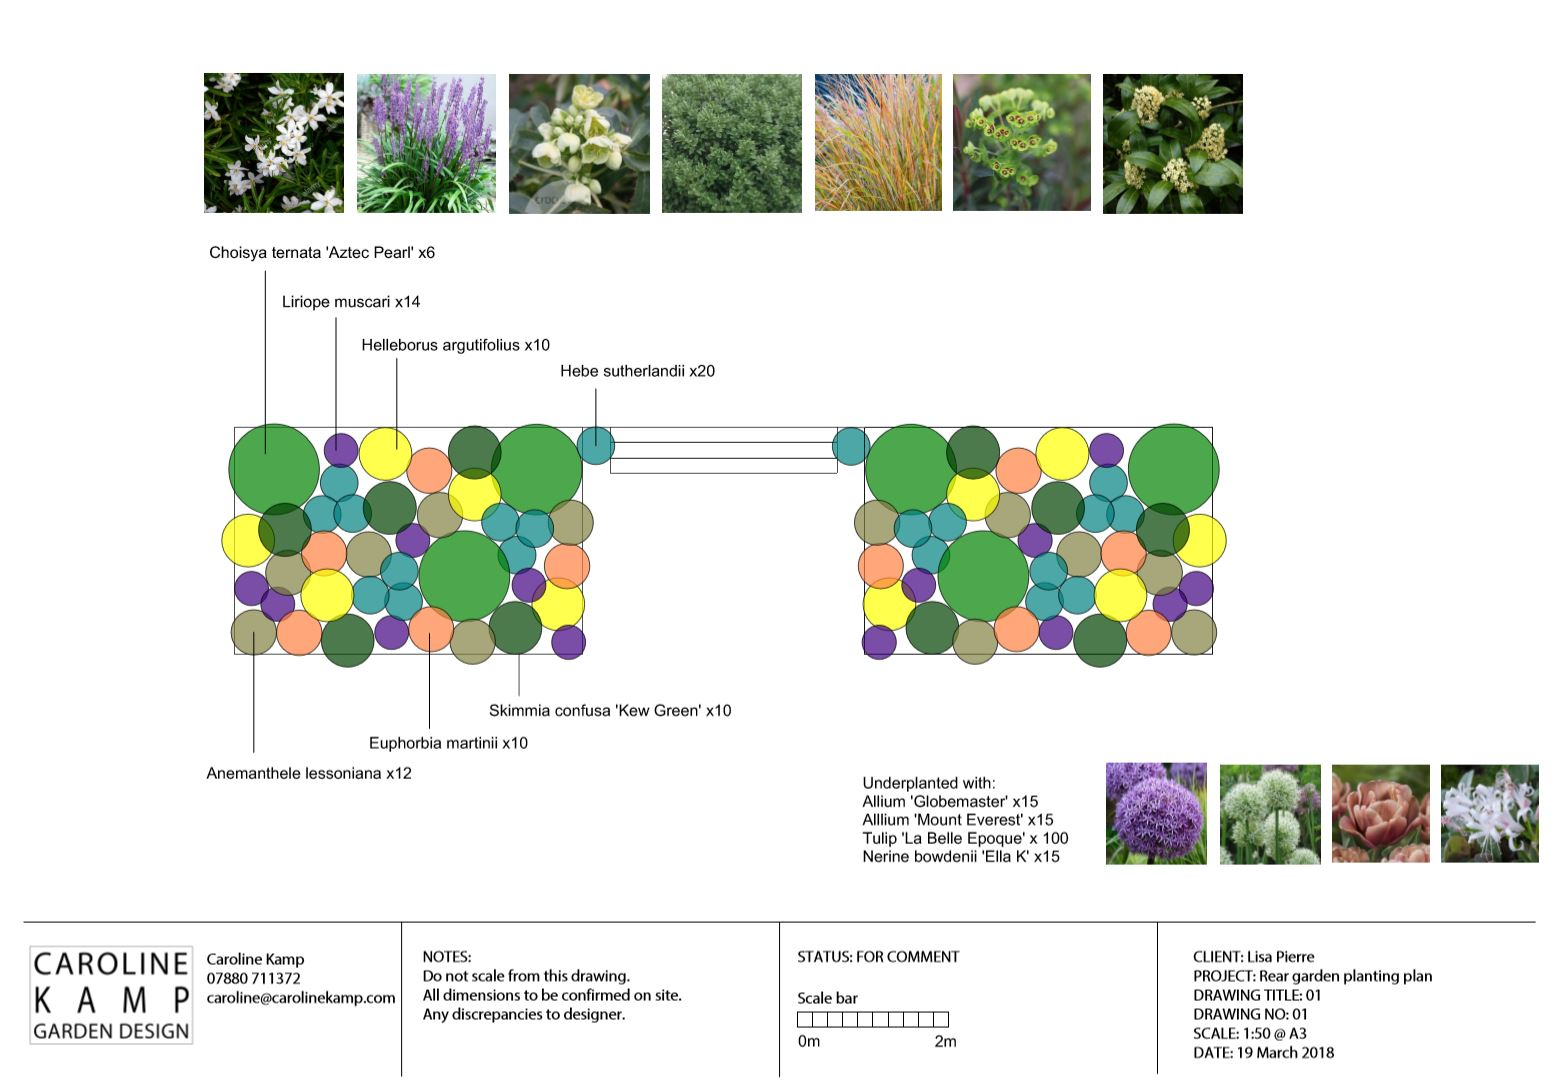 The final planting plan with full list of plants and their placement. I produce these designs to scale using Vectorworks software.